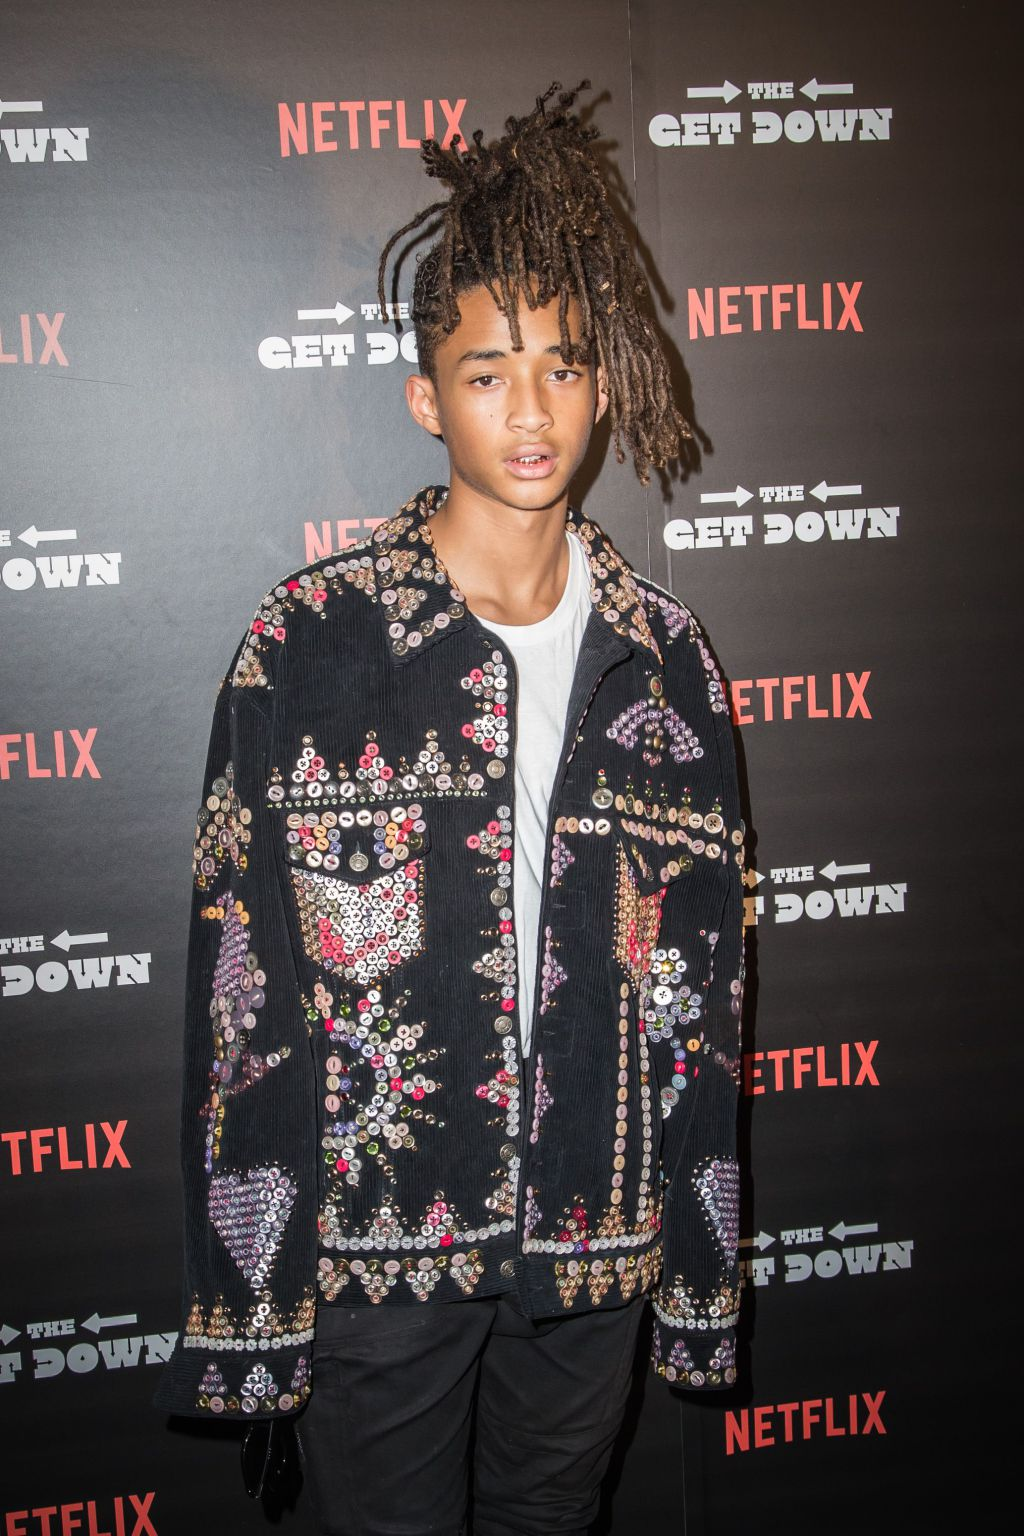 Mandatory Credit: Photo by Joe Russo/REX/Shutterstock (5827792am) Jaden Smith Netflix 'The Get Down' series screening,   New York,   USA - 11 Aug 2016